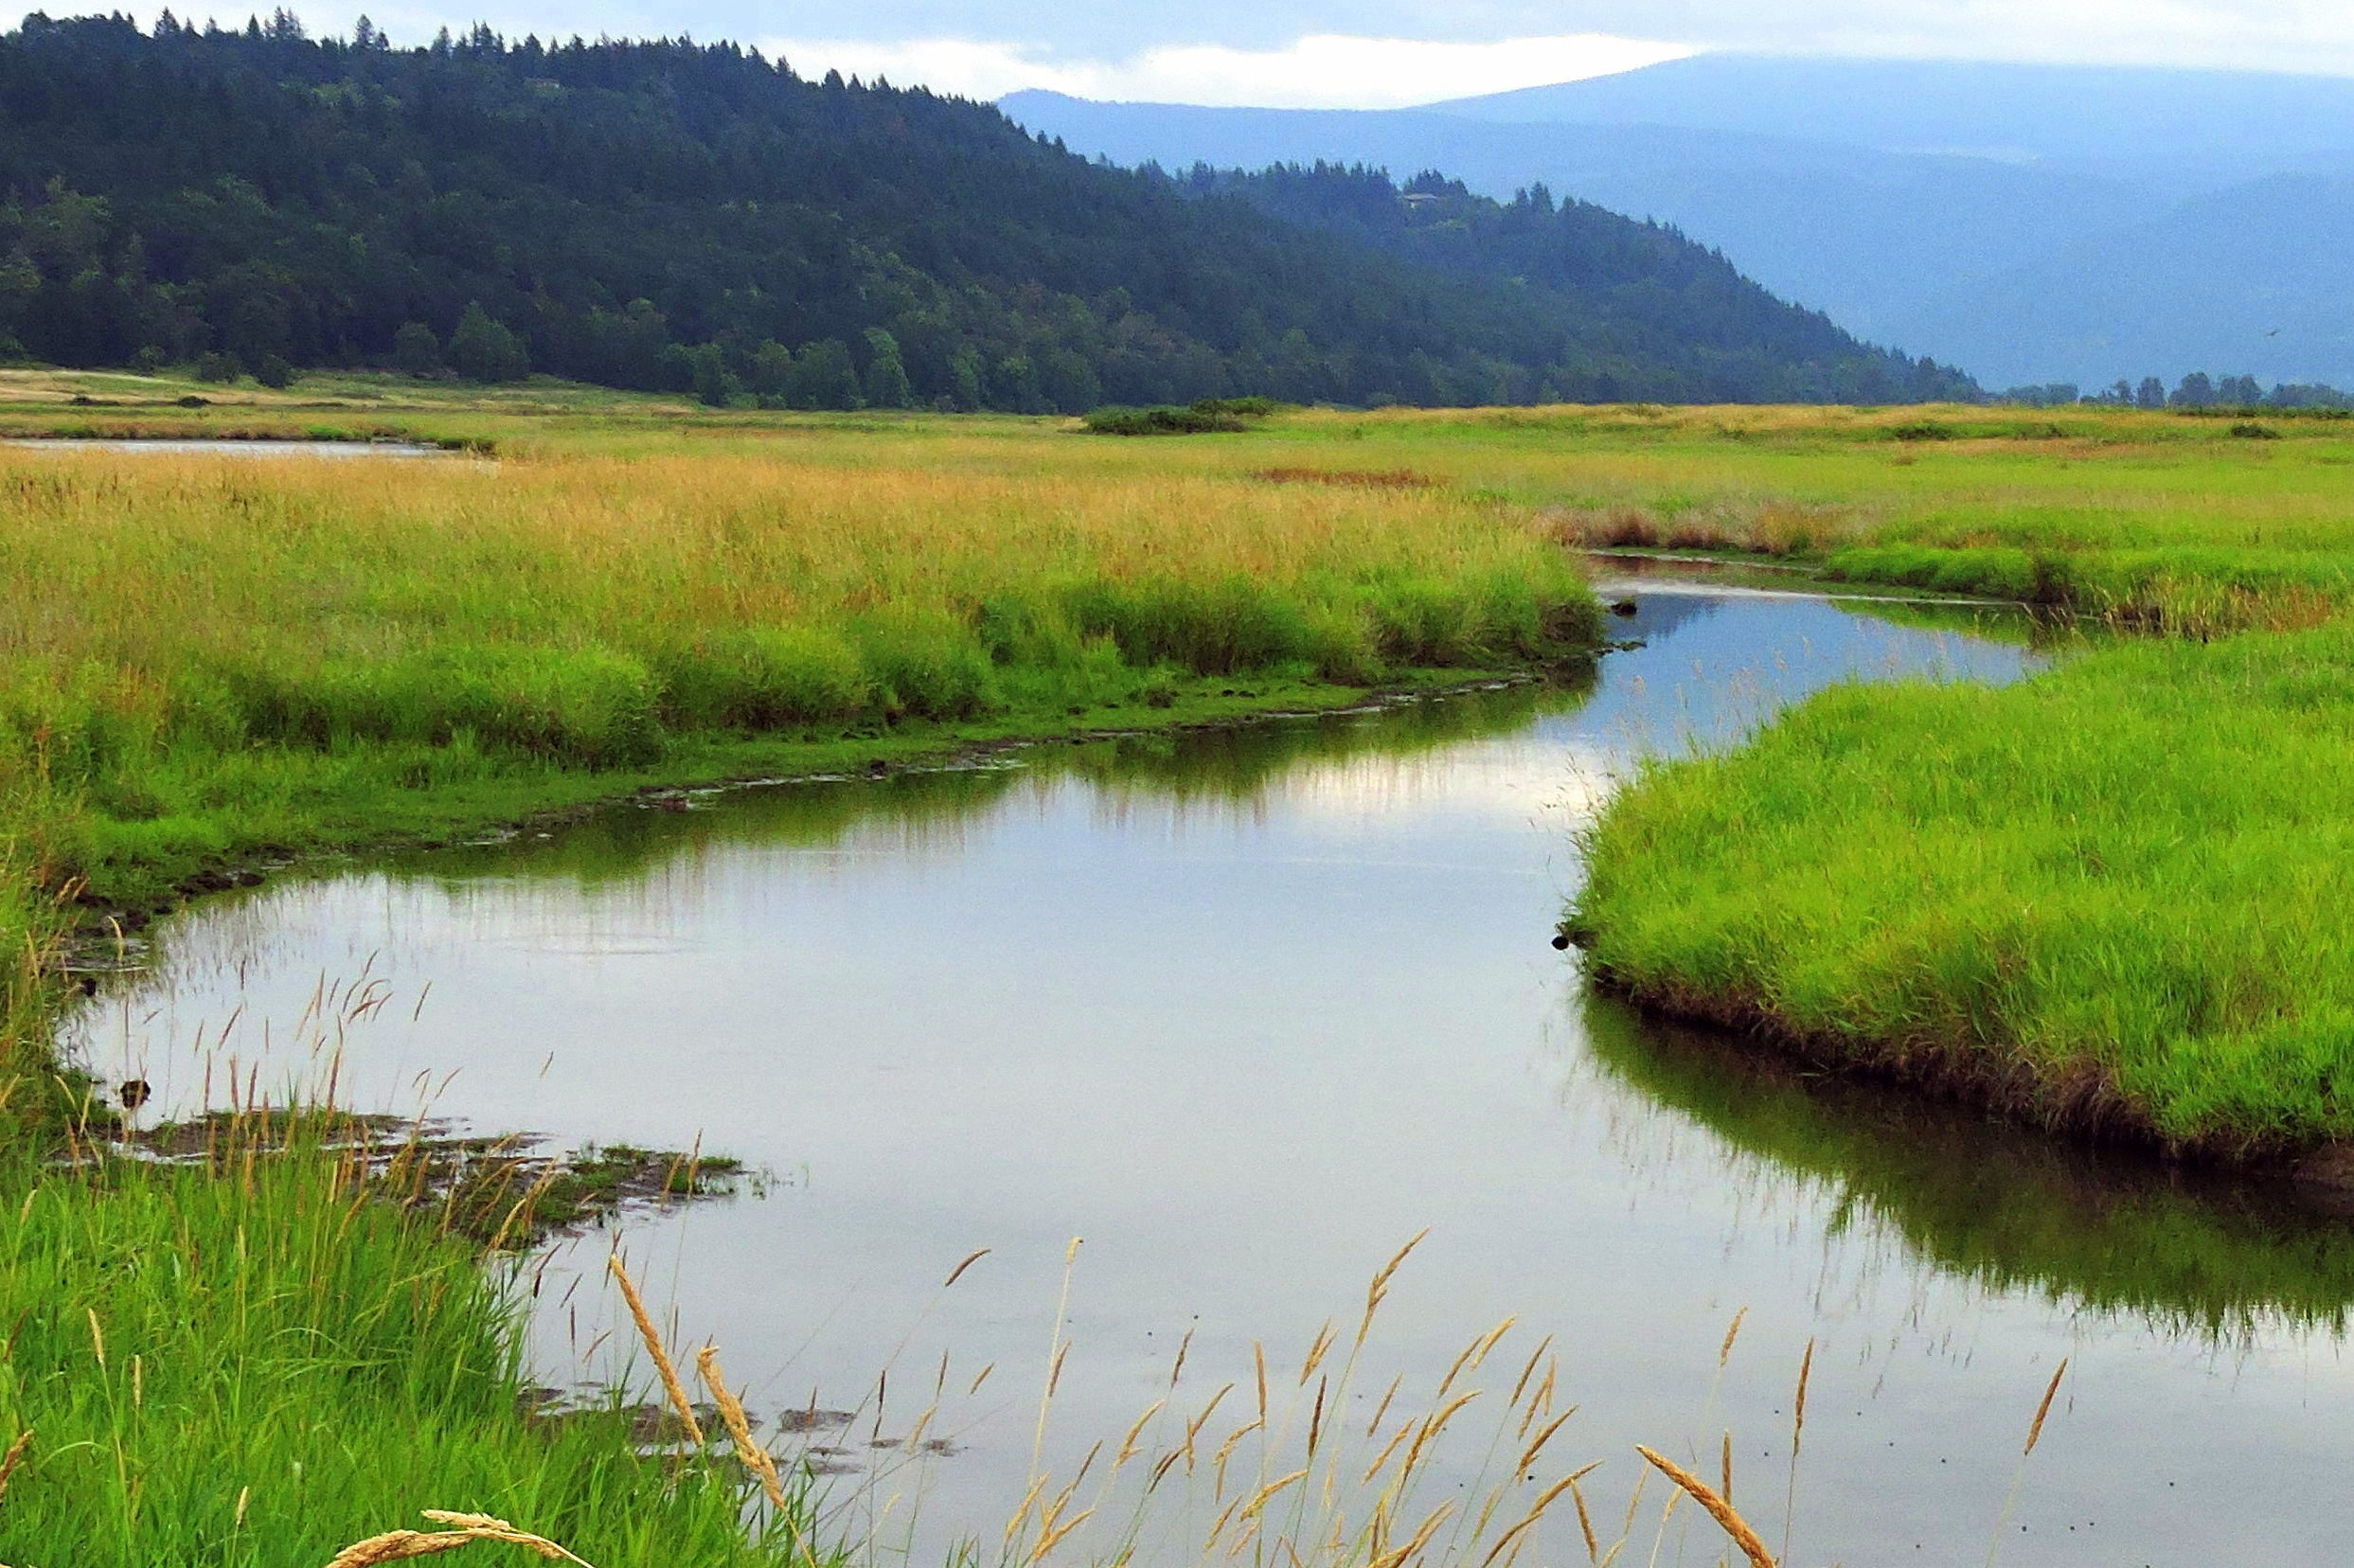 Conservation Group Permanently Protects 470 Acres of Land in Columbia Gorge